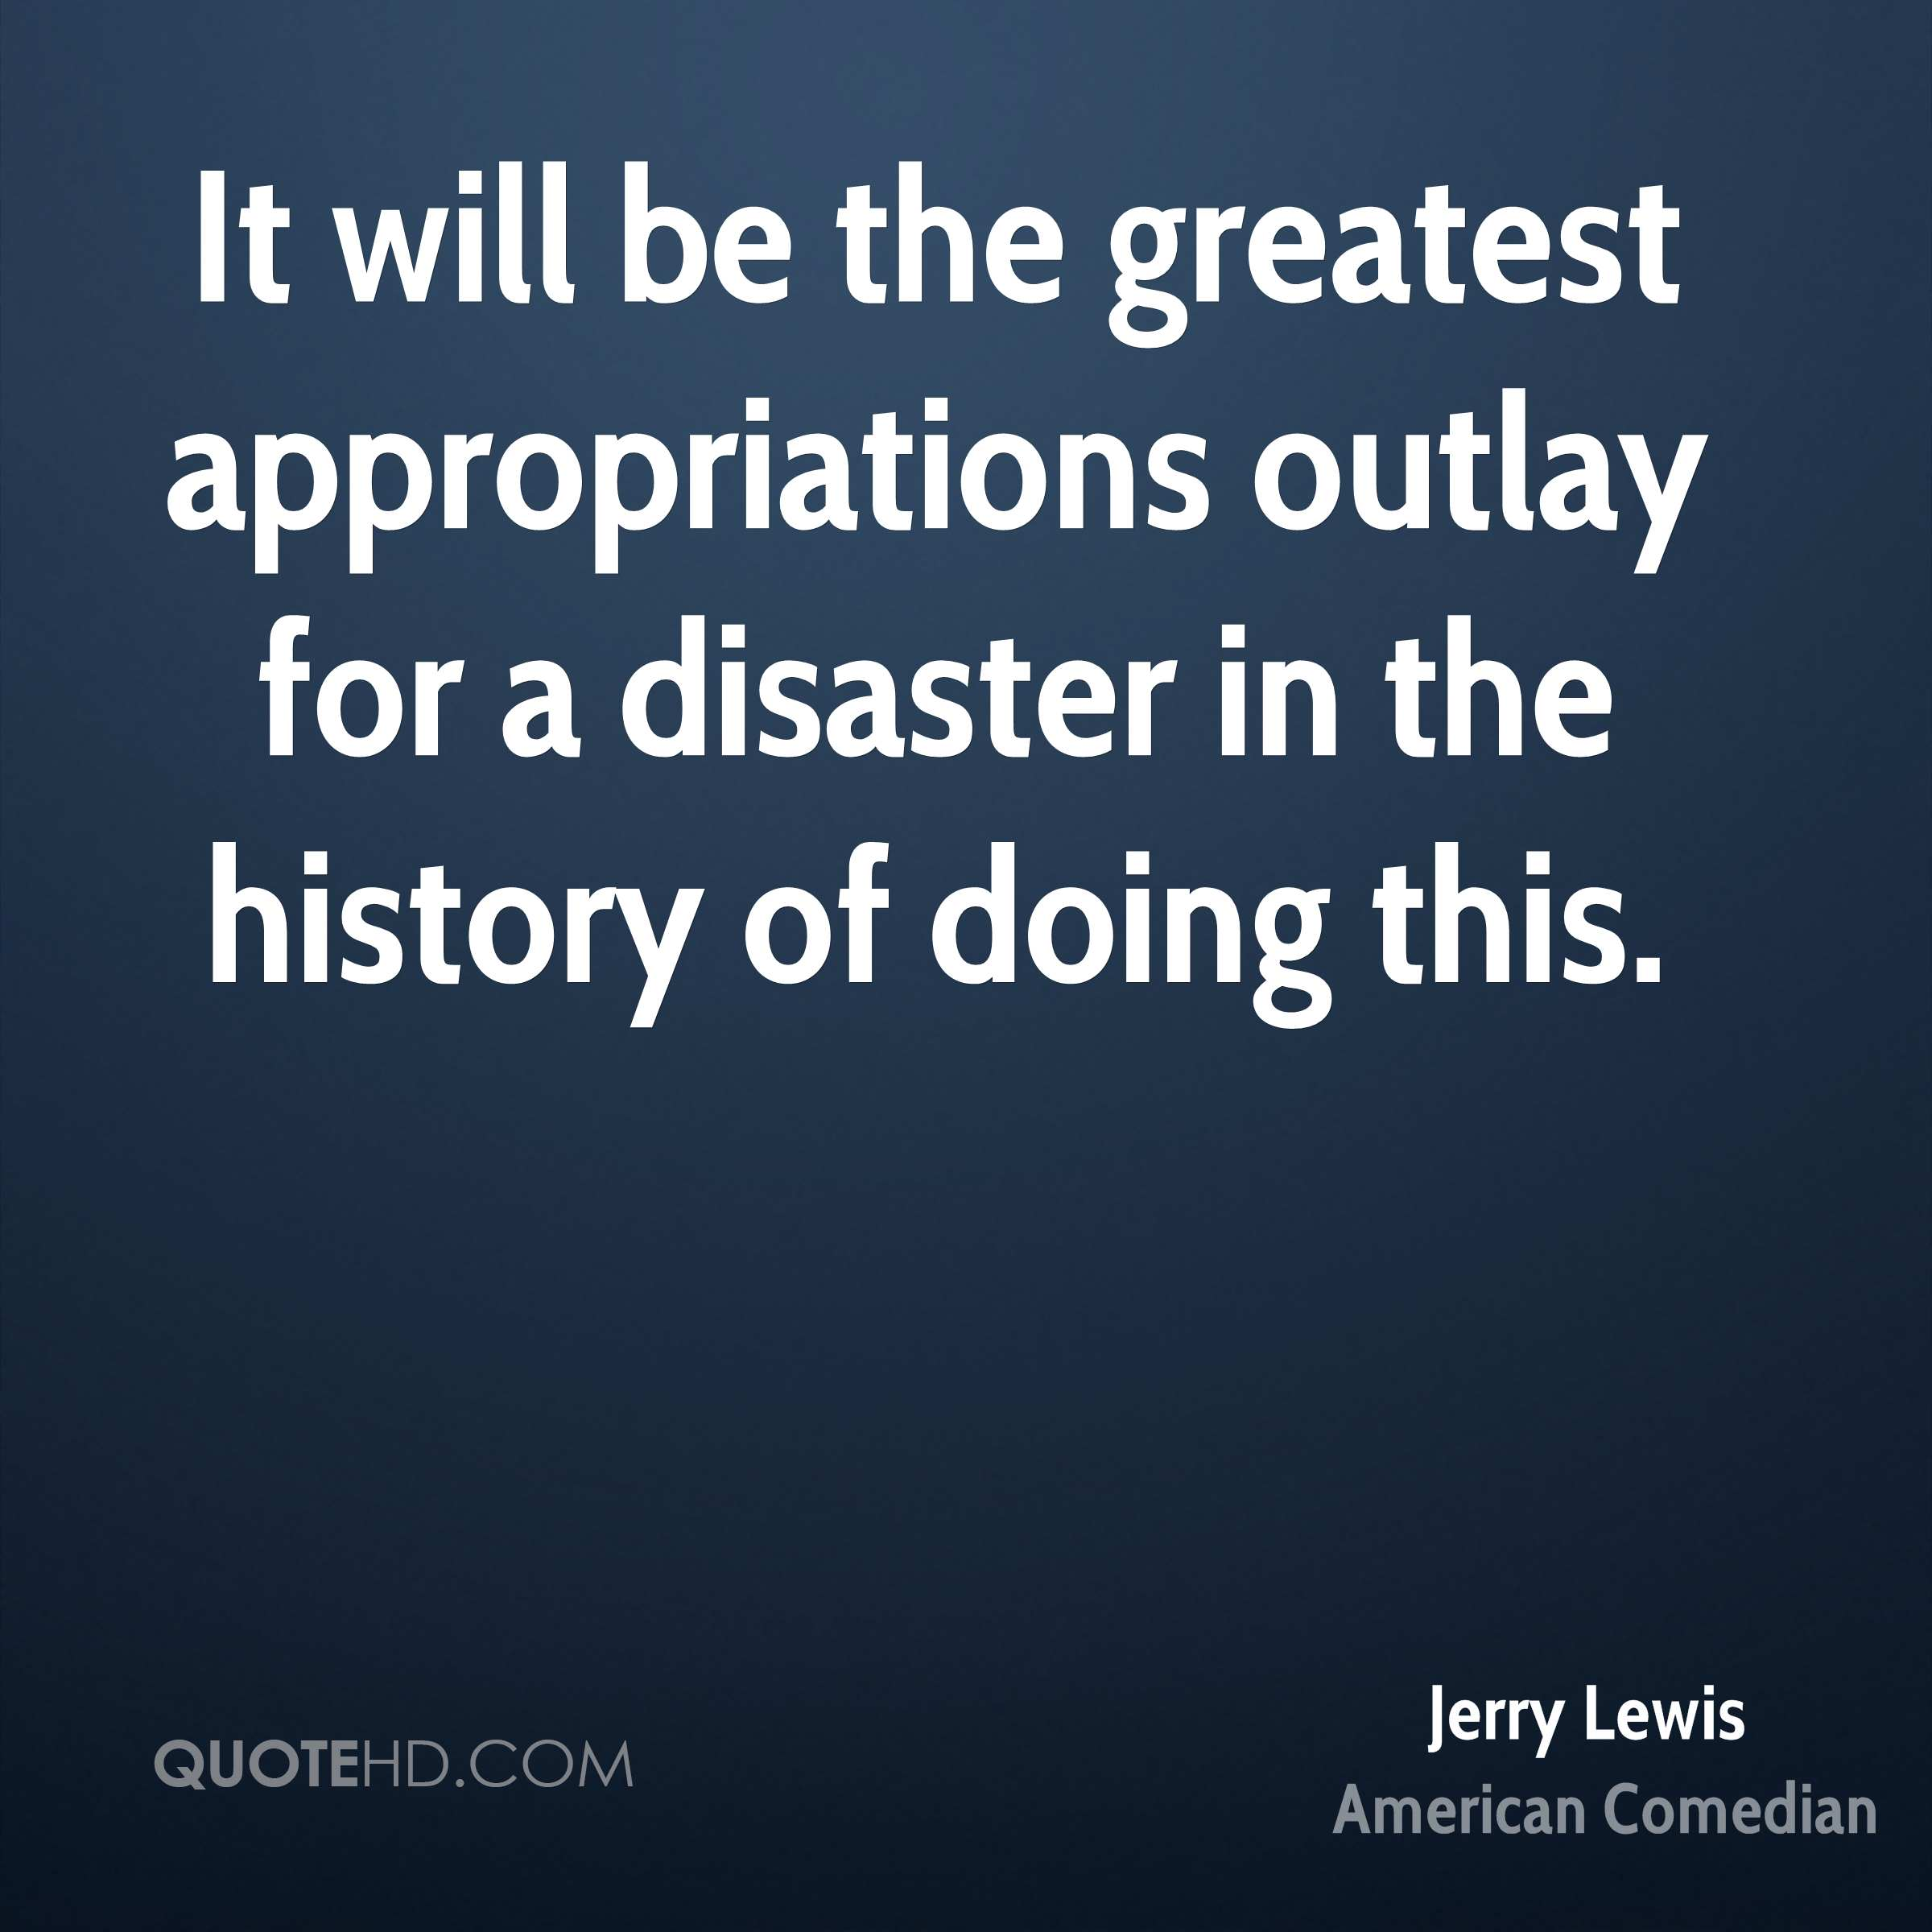 It will be the greatest appropriations outlay for a disaster in the history of doing this.